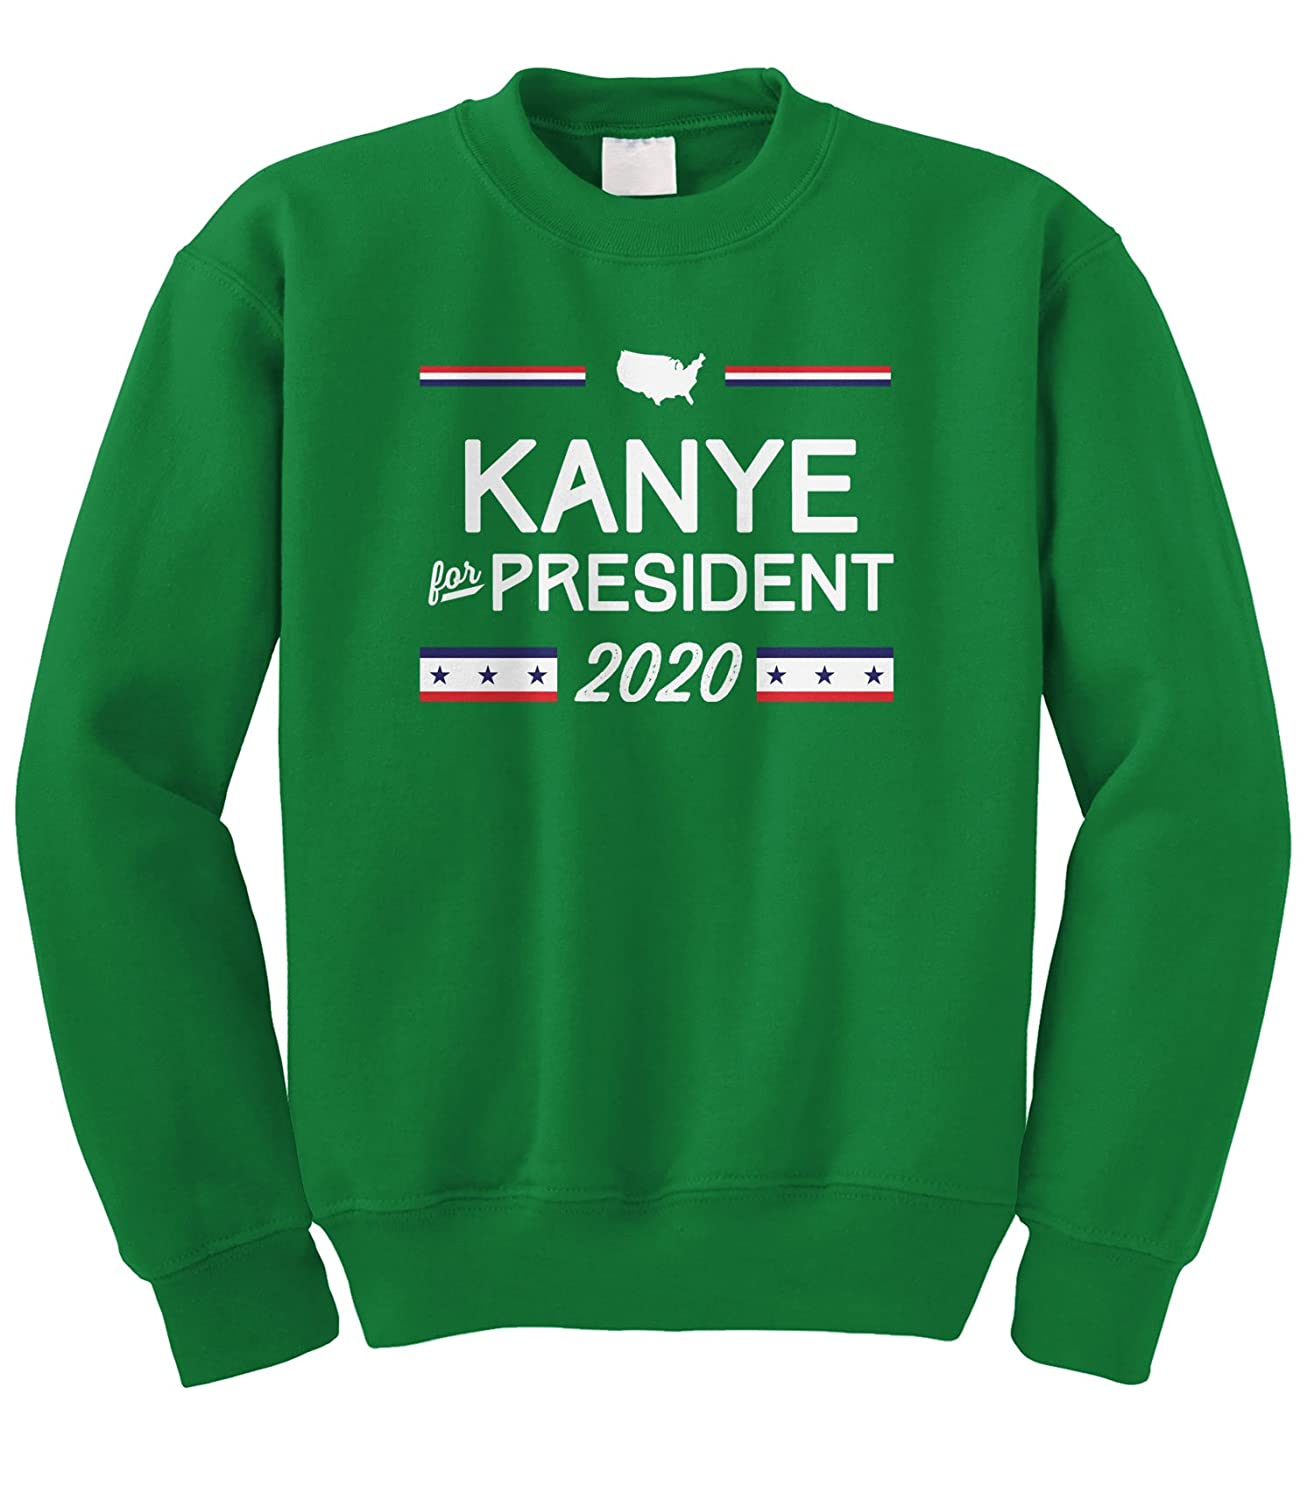 Cybertela Kanye For President 2020 Crewneck Sweatshirt 0660_MENCREW